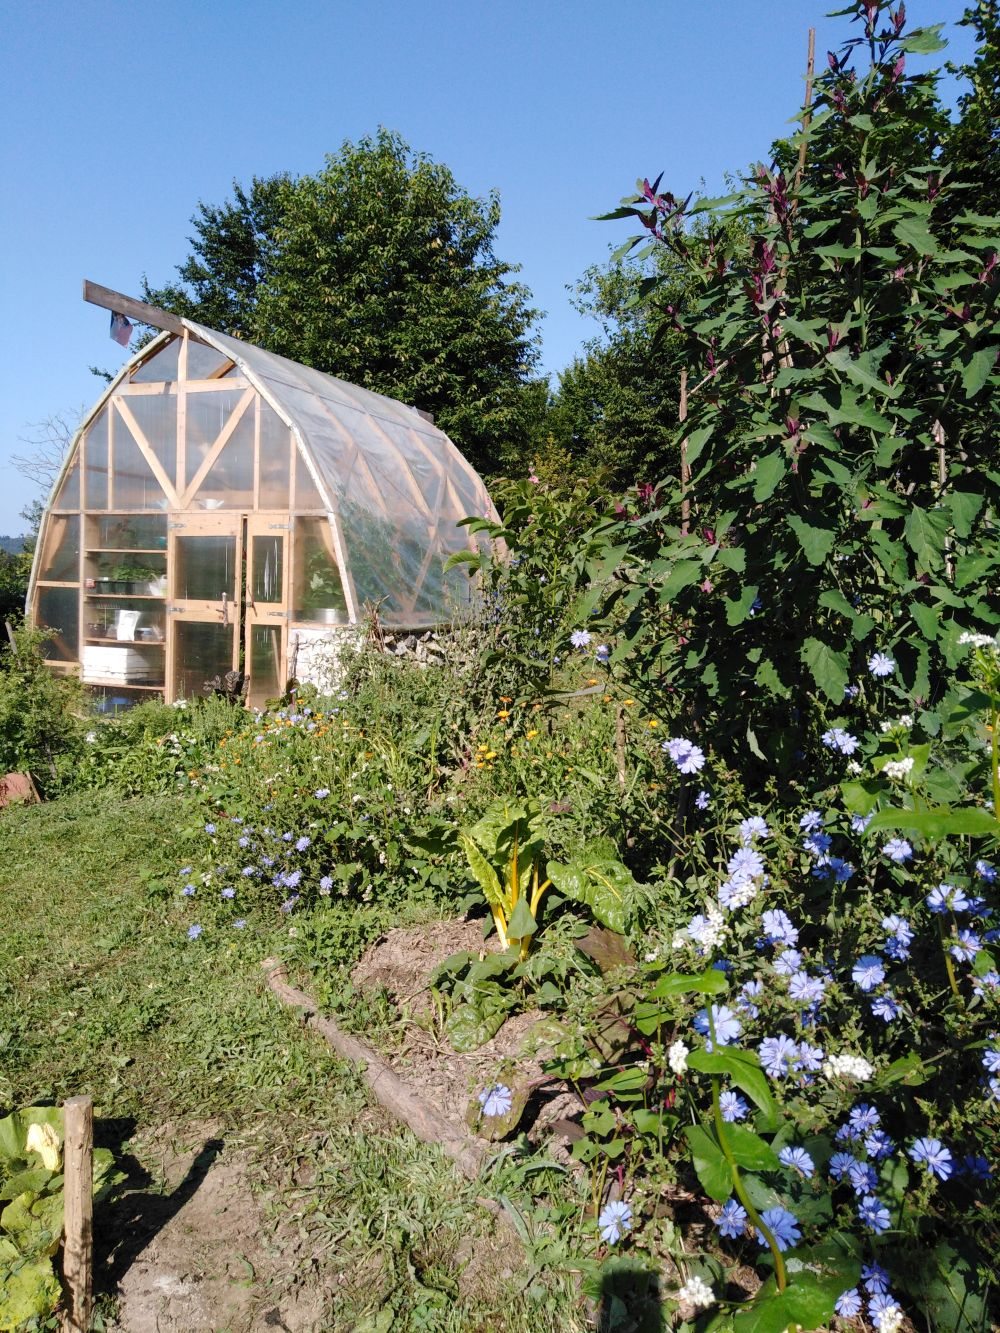 Greenhouse in the permaculture garden